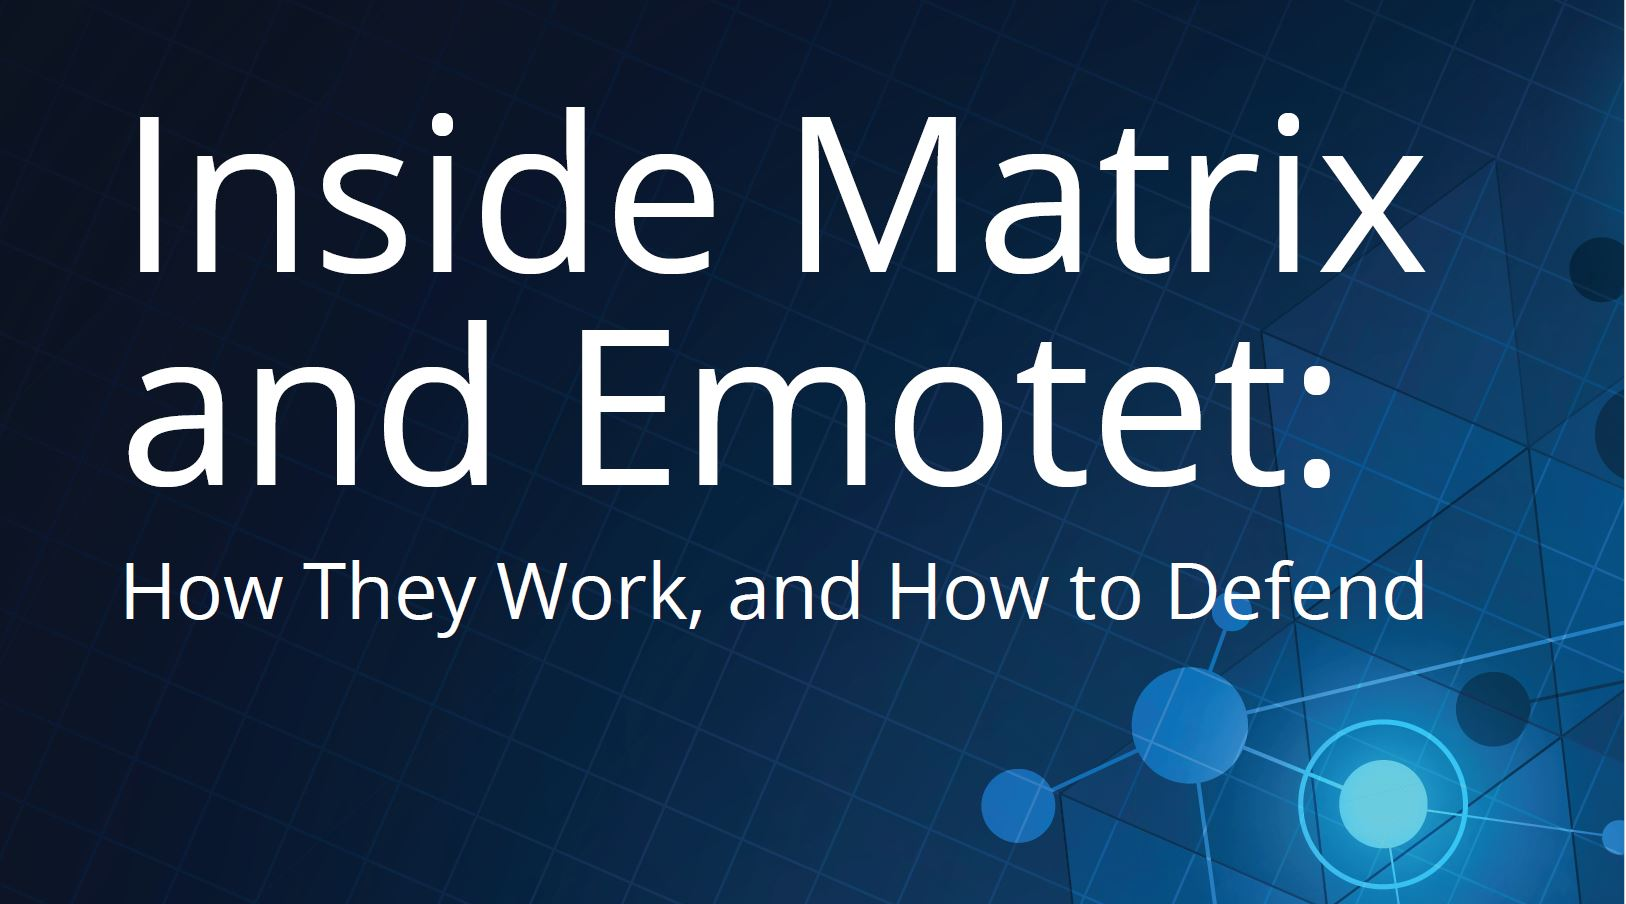 Inside Matrix & Emotet: How They Work and How to Defend